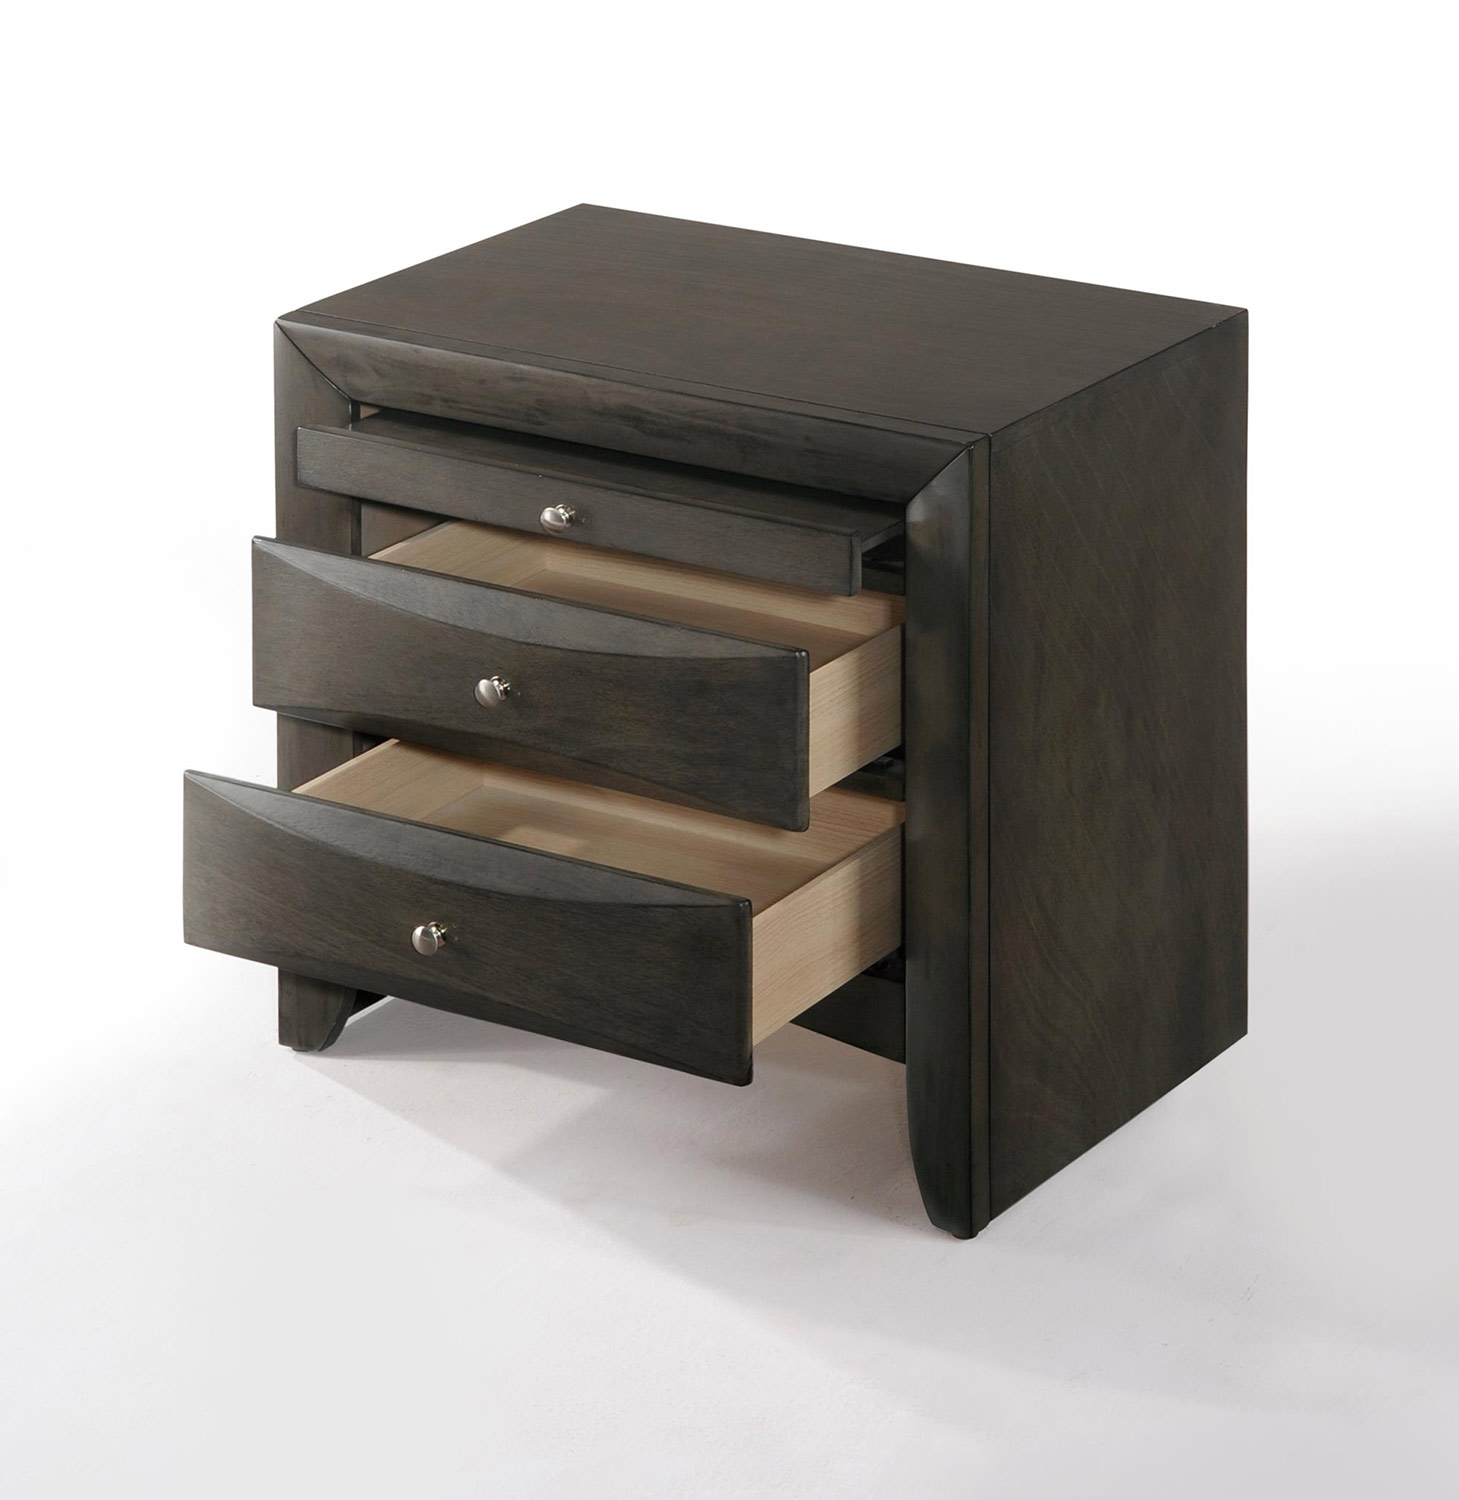 Acme Ireland Nightstand - Gray Oak